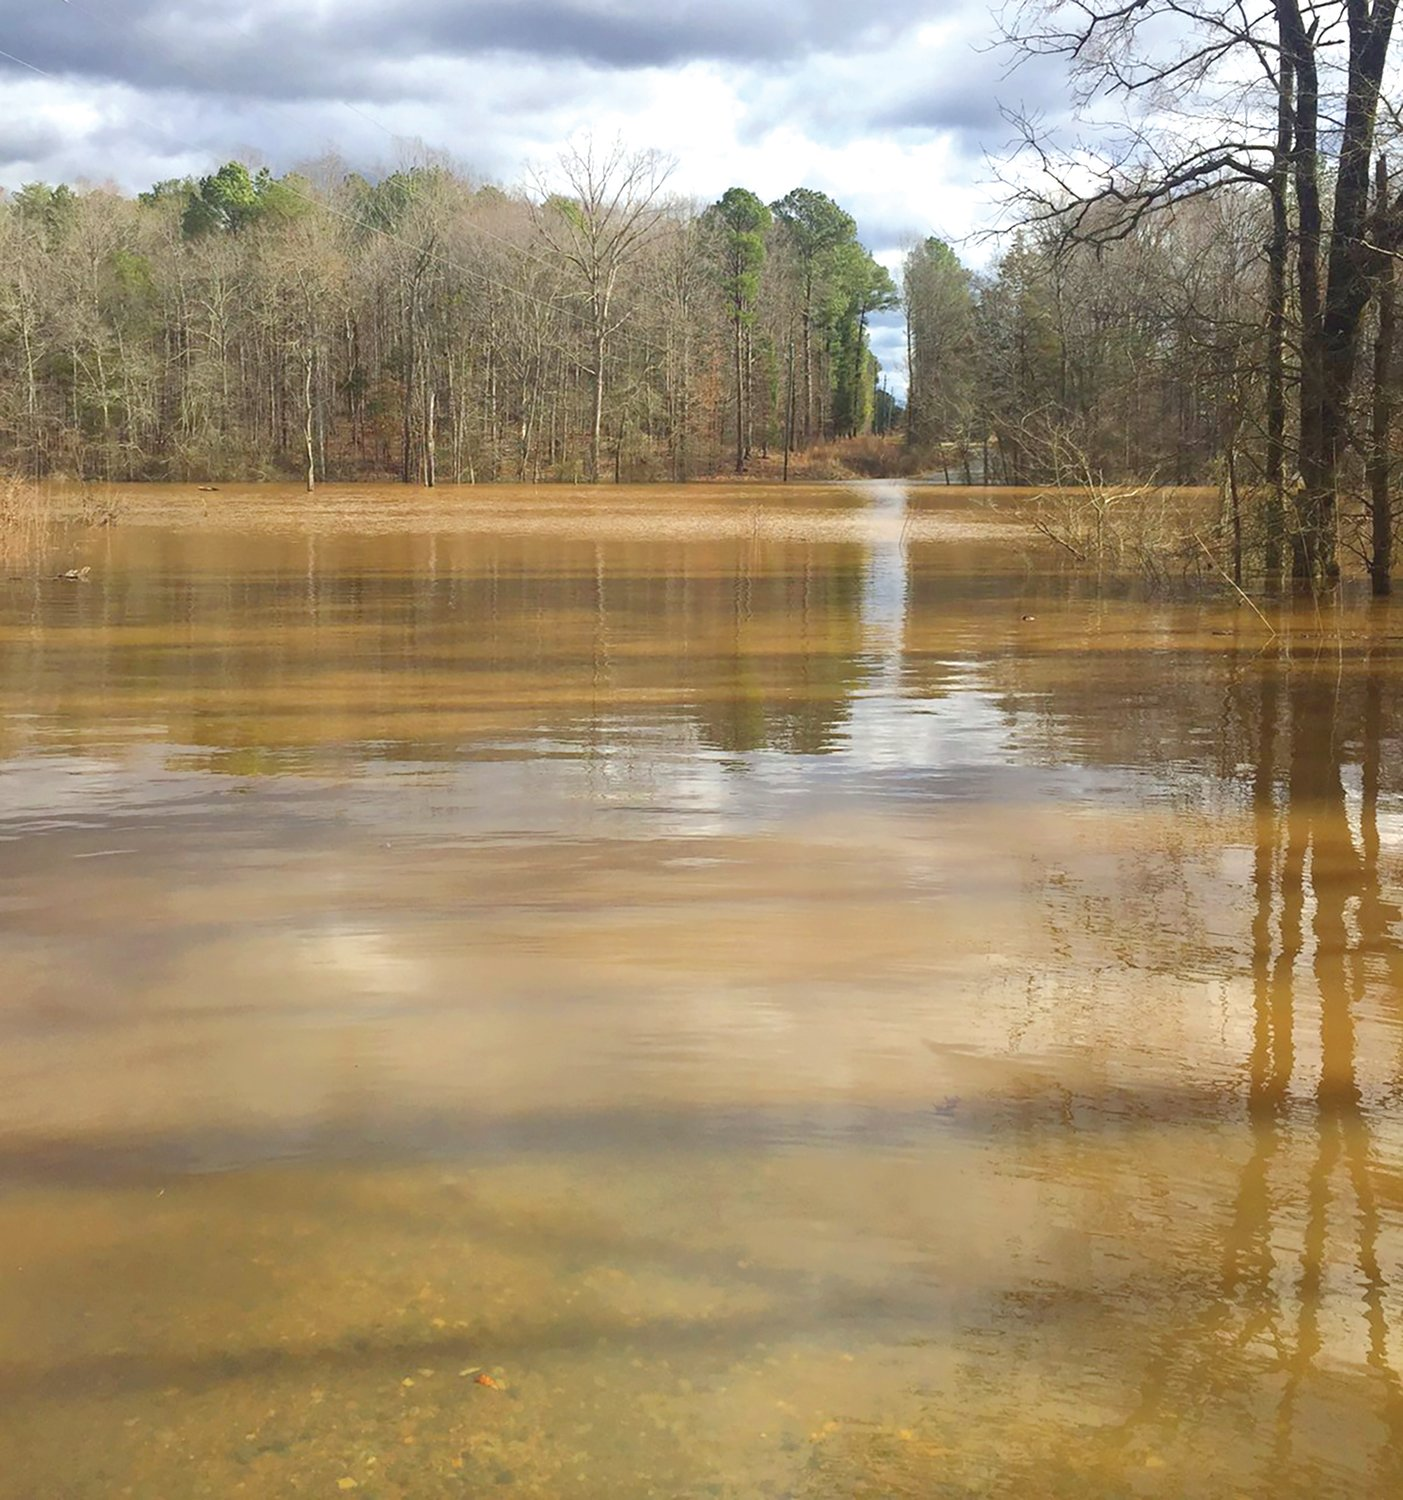 A portion of Alton King Road in Goldston was turned into a pond by flood waters from the Deep River over the weekend.